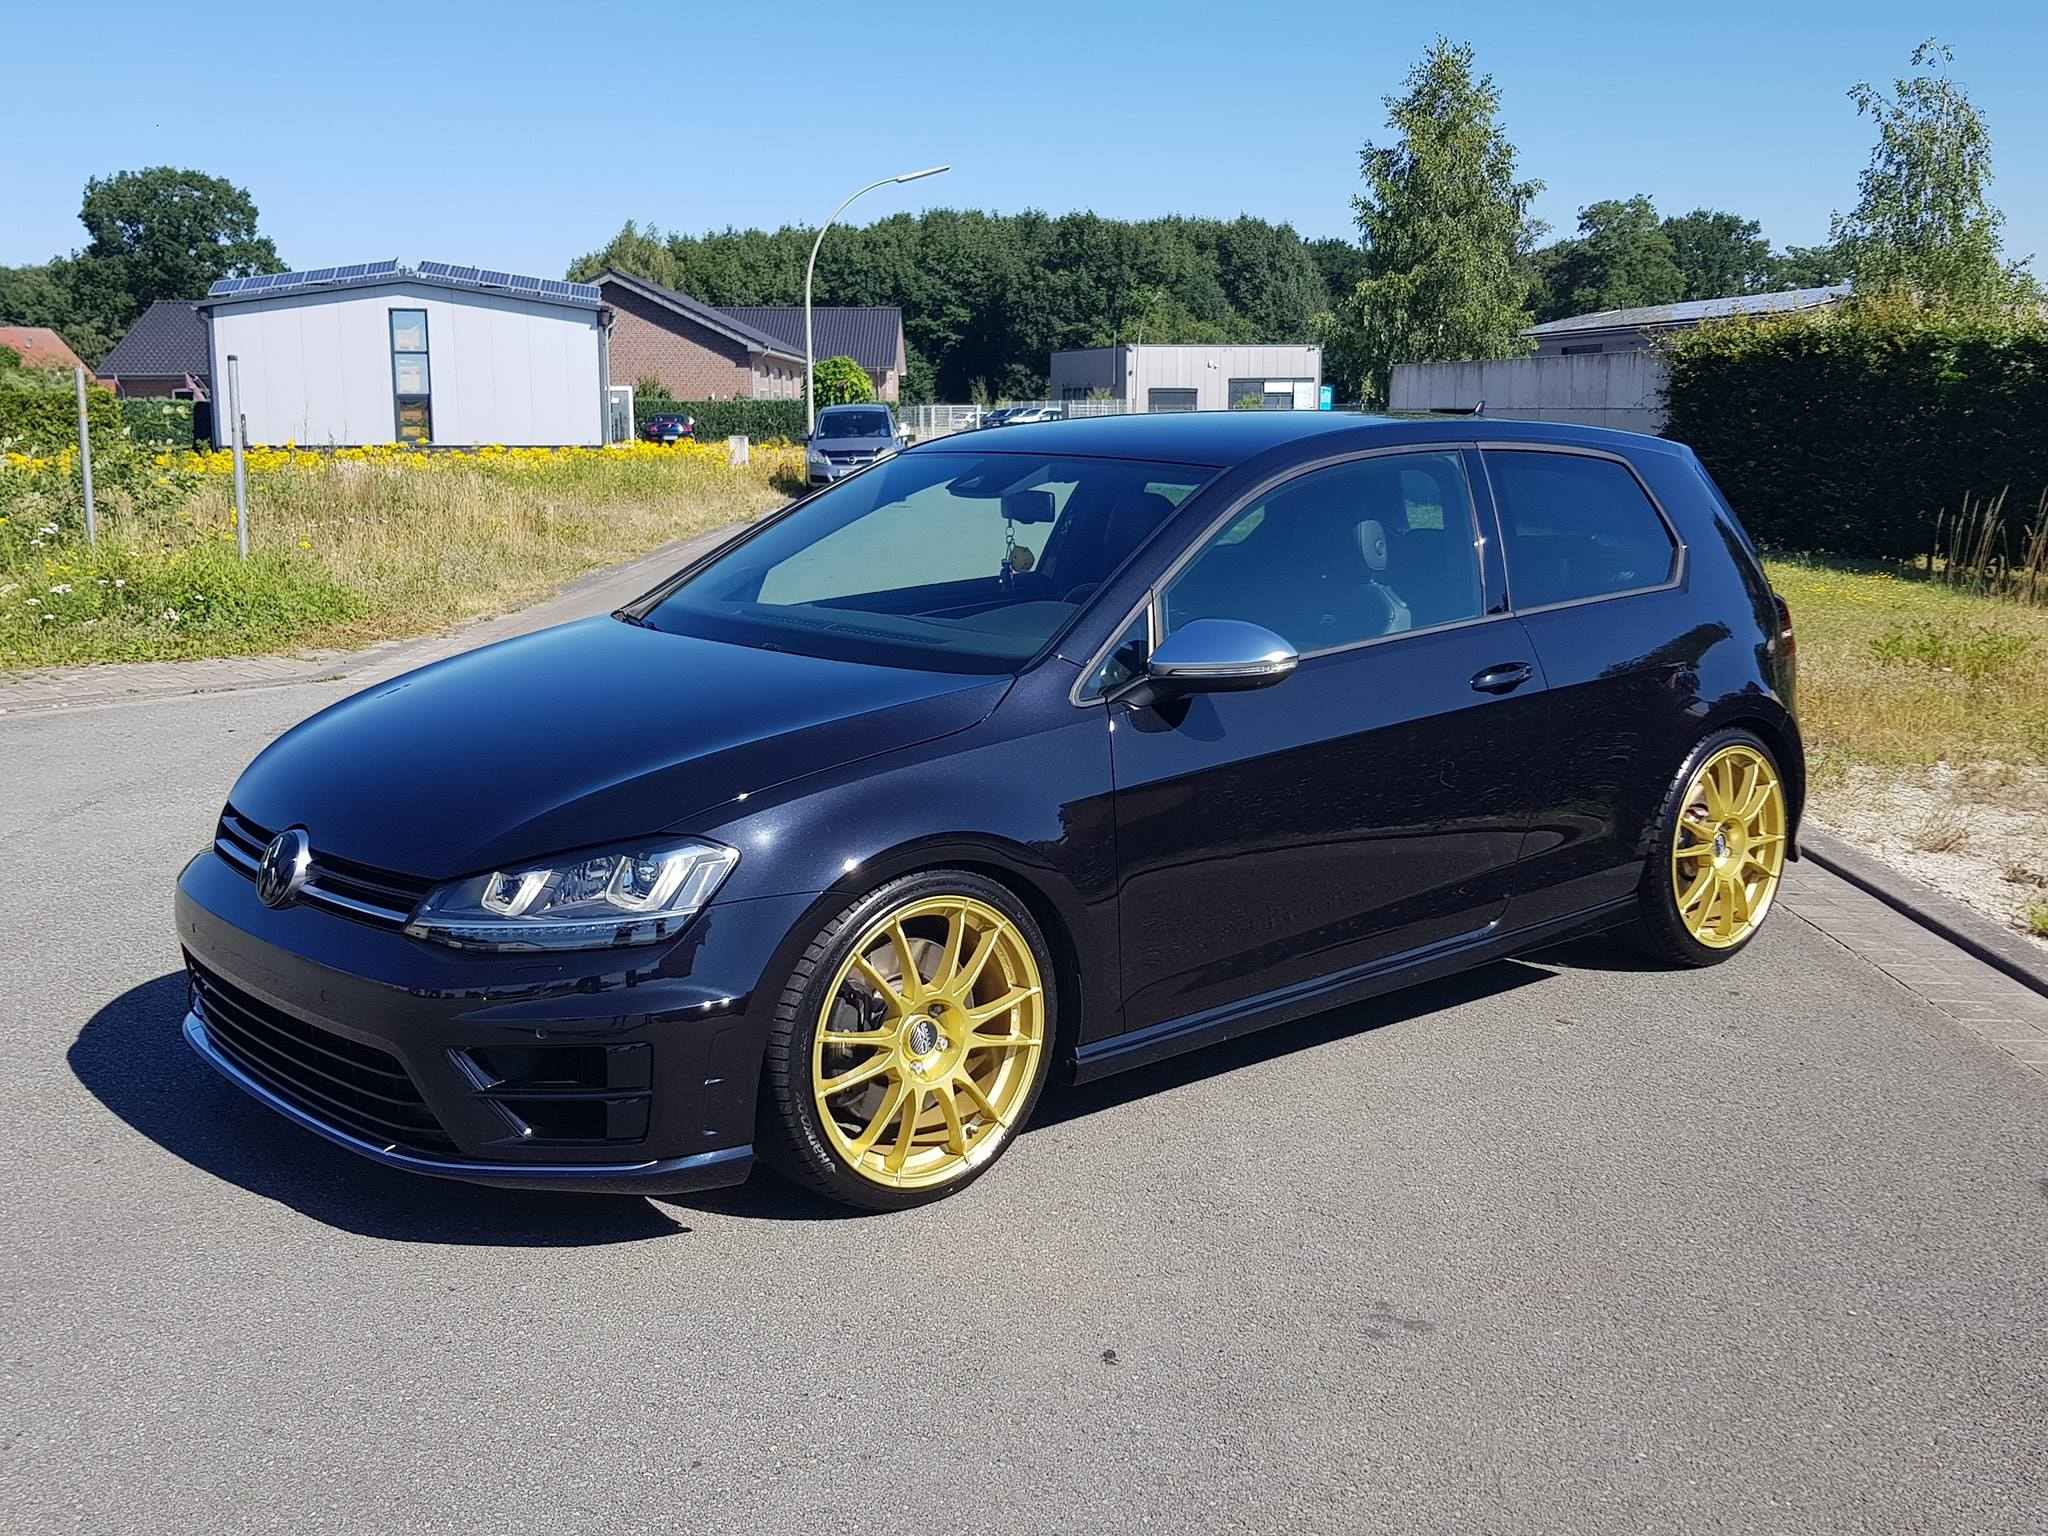 Golf R Mk7 With A 25 L Tfsi Inline Five Engine Swap Depot Volkswagen Wiring Harness This Vw Was Built By Mtr Performance And Sar Turbotechnik In Germany They Replaced The Factory Turbocharged 20 Fsi Four